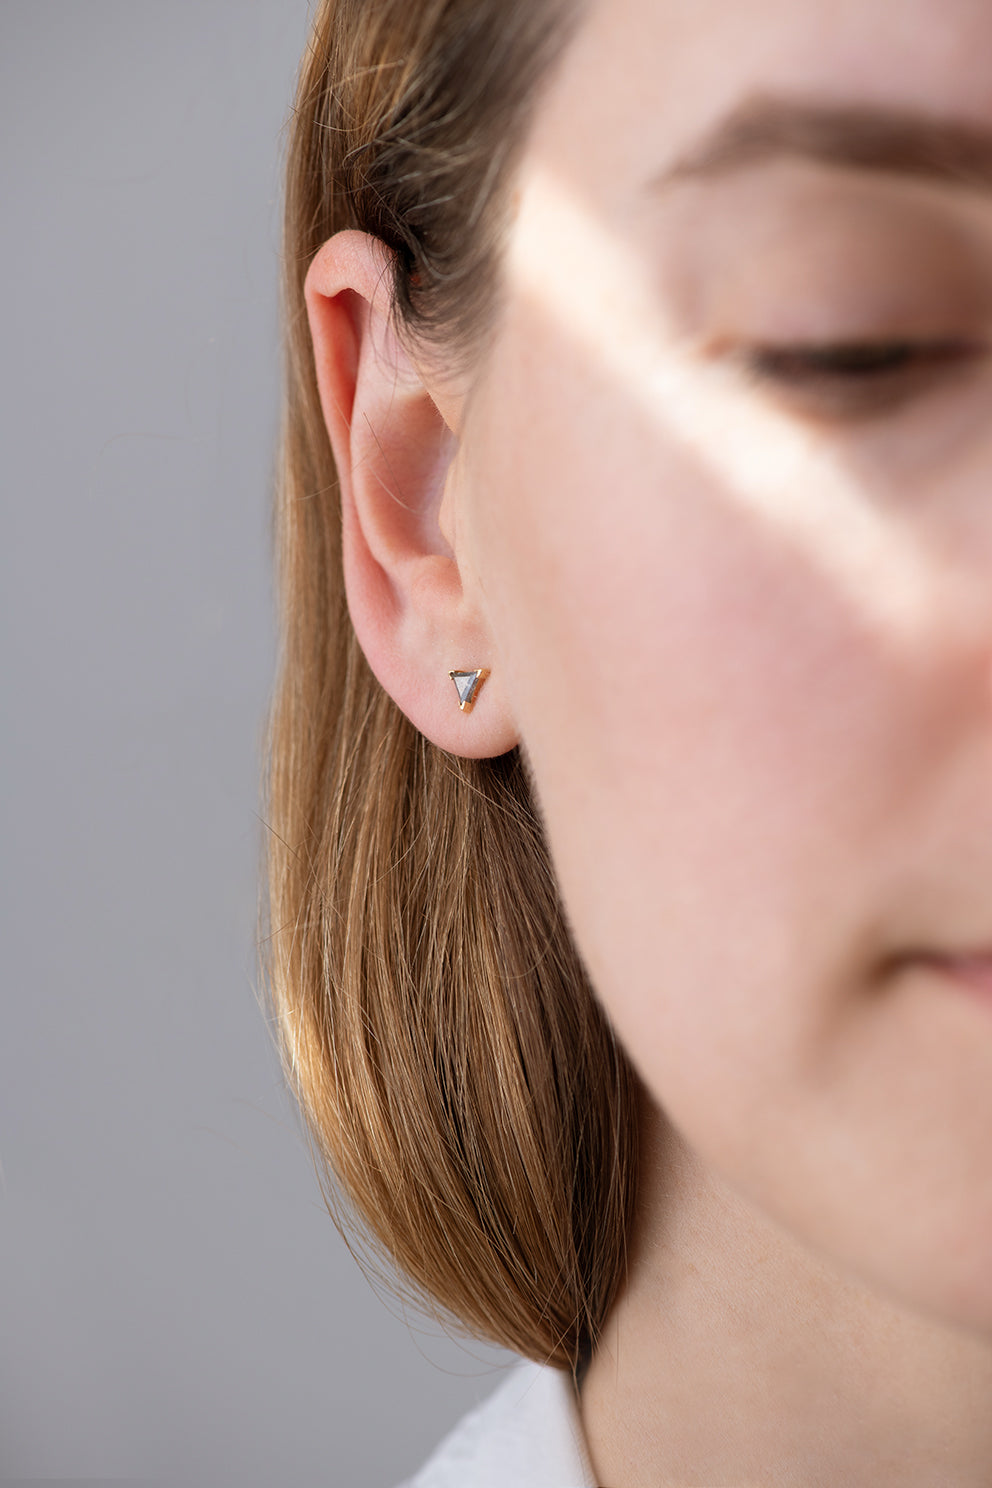 Grey Triangle Diamond Stud Earrings other angle on ear